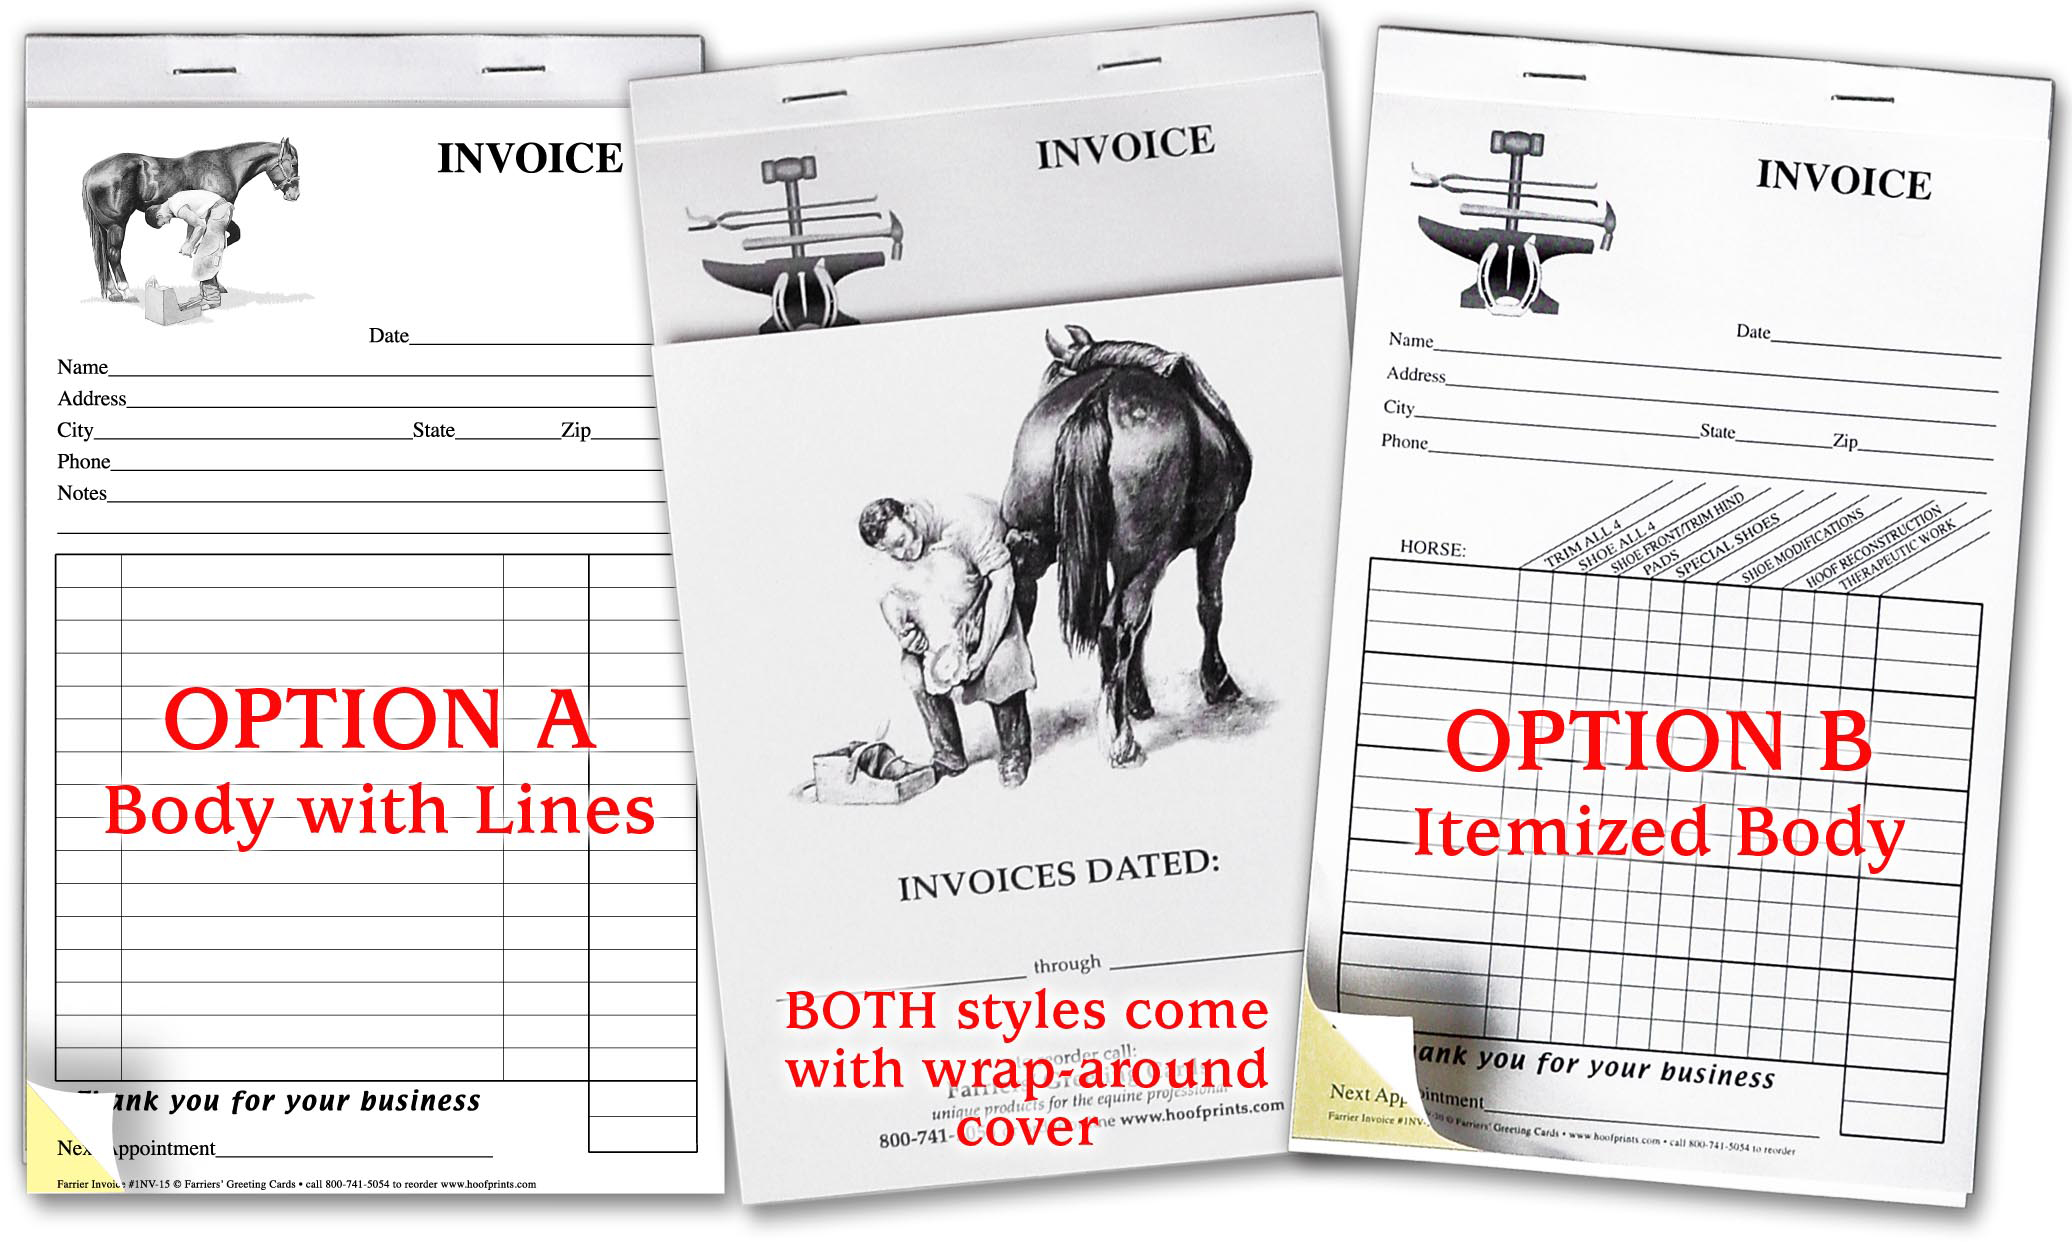 Stock Invoices - NO MINIMUM order-www.hoofprints.com